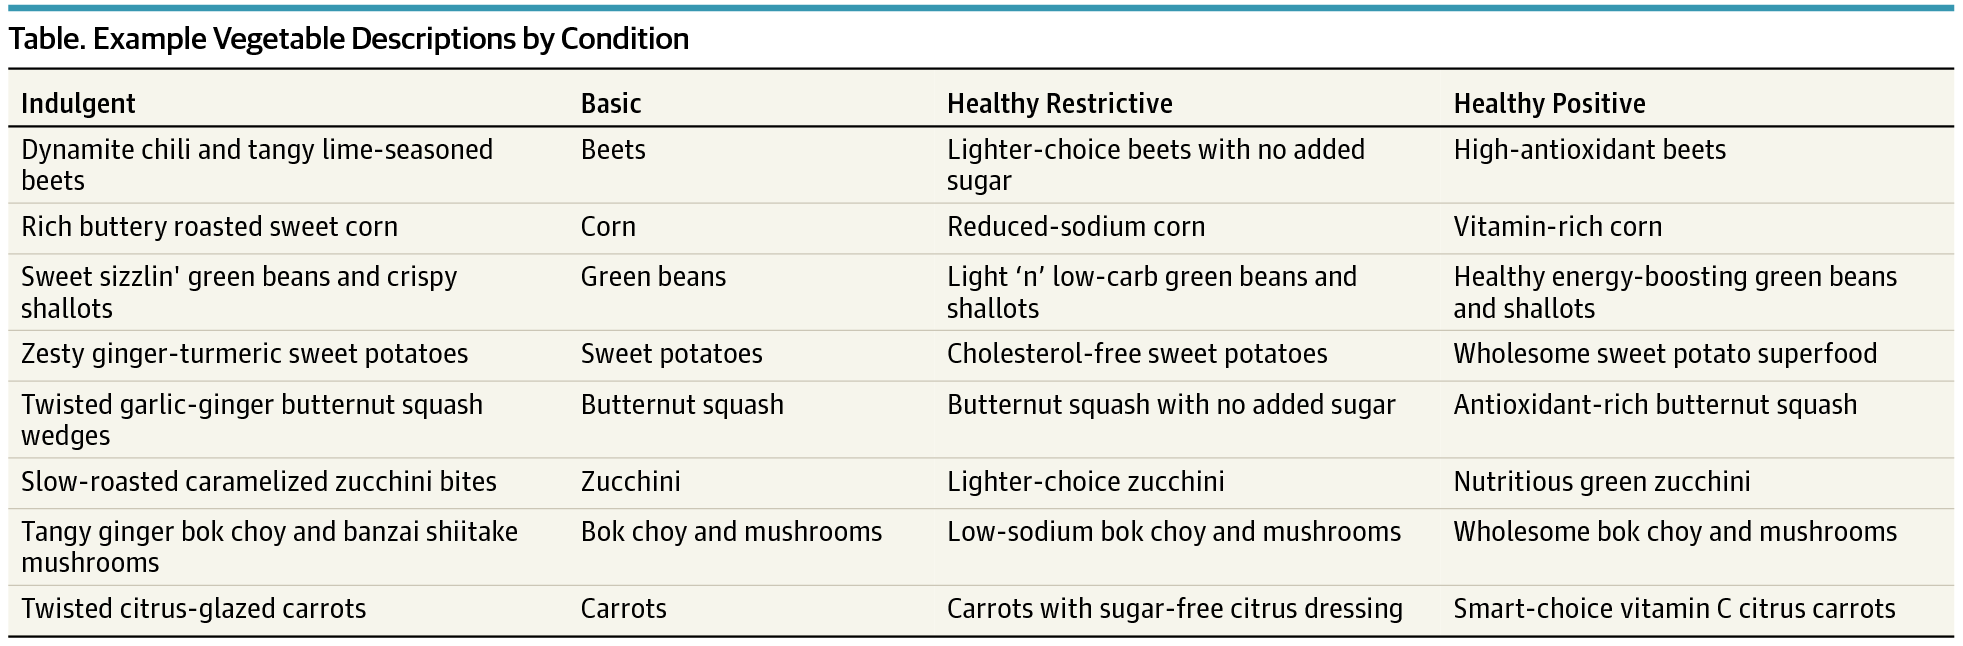 JAMA Veggies Descriptions